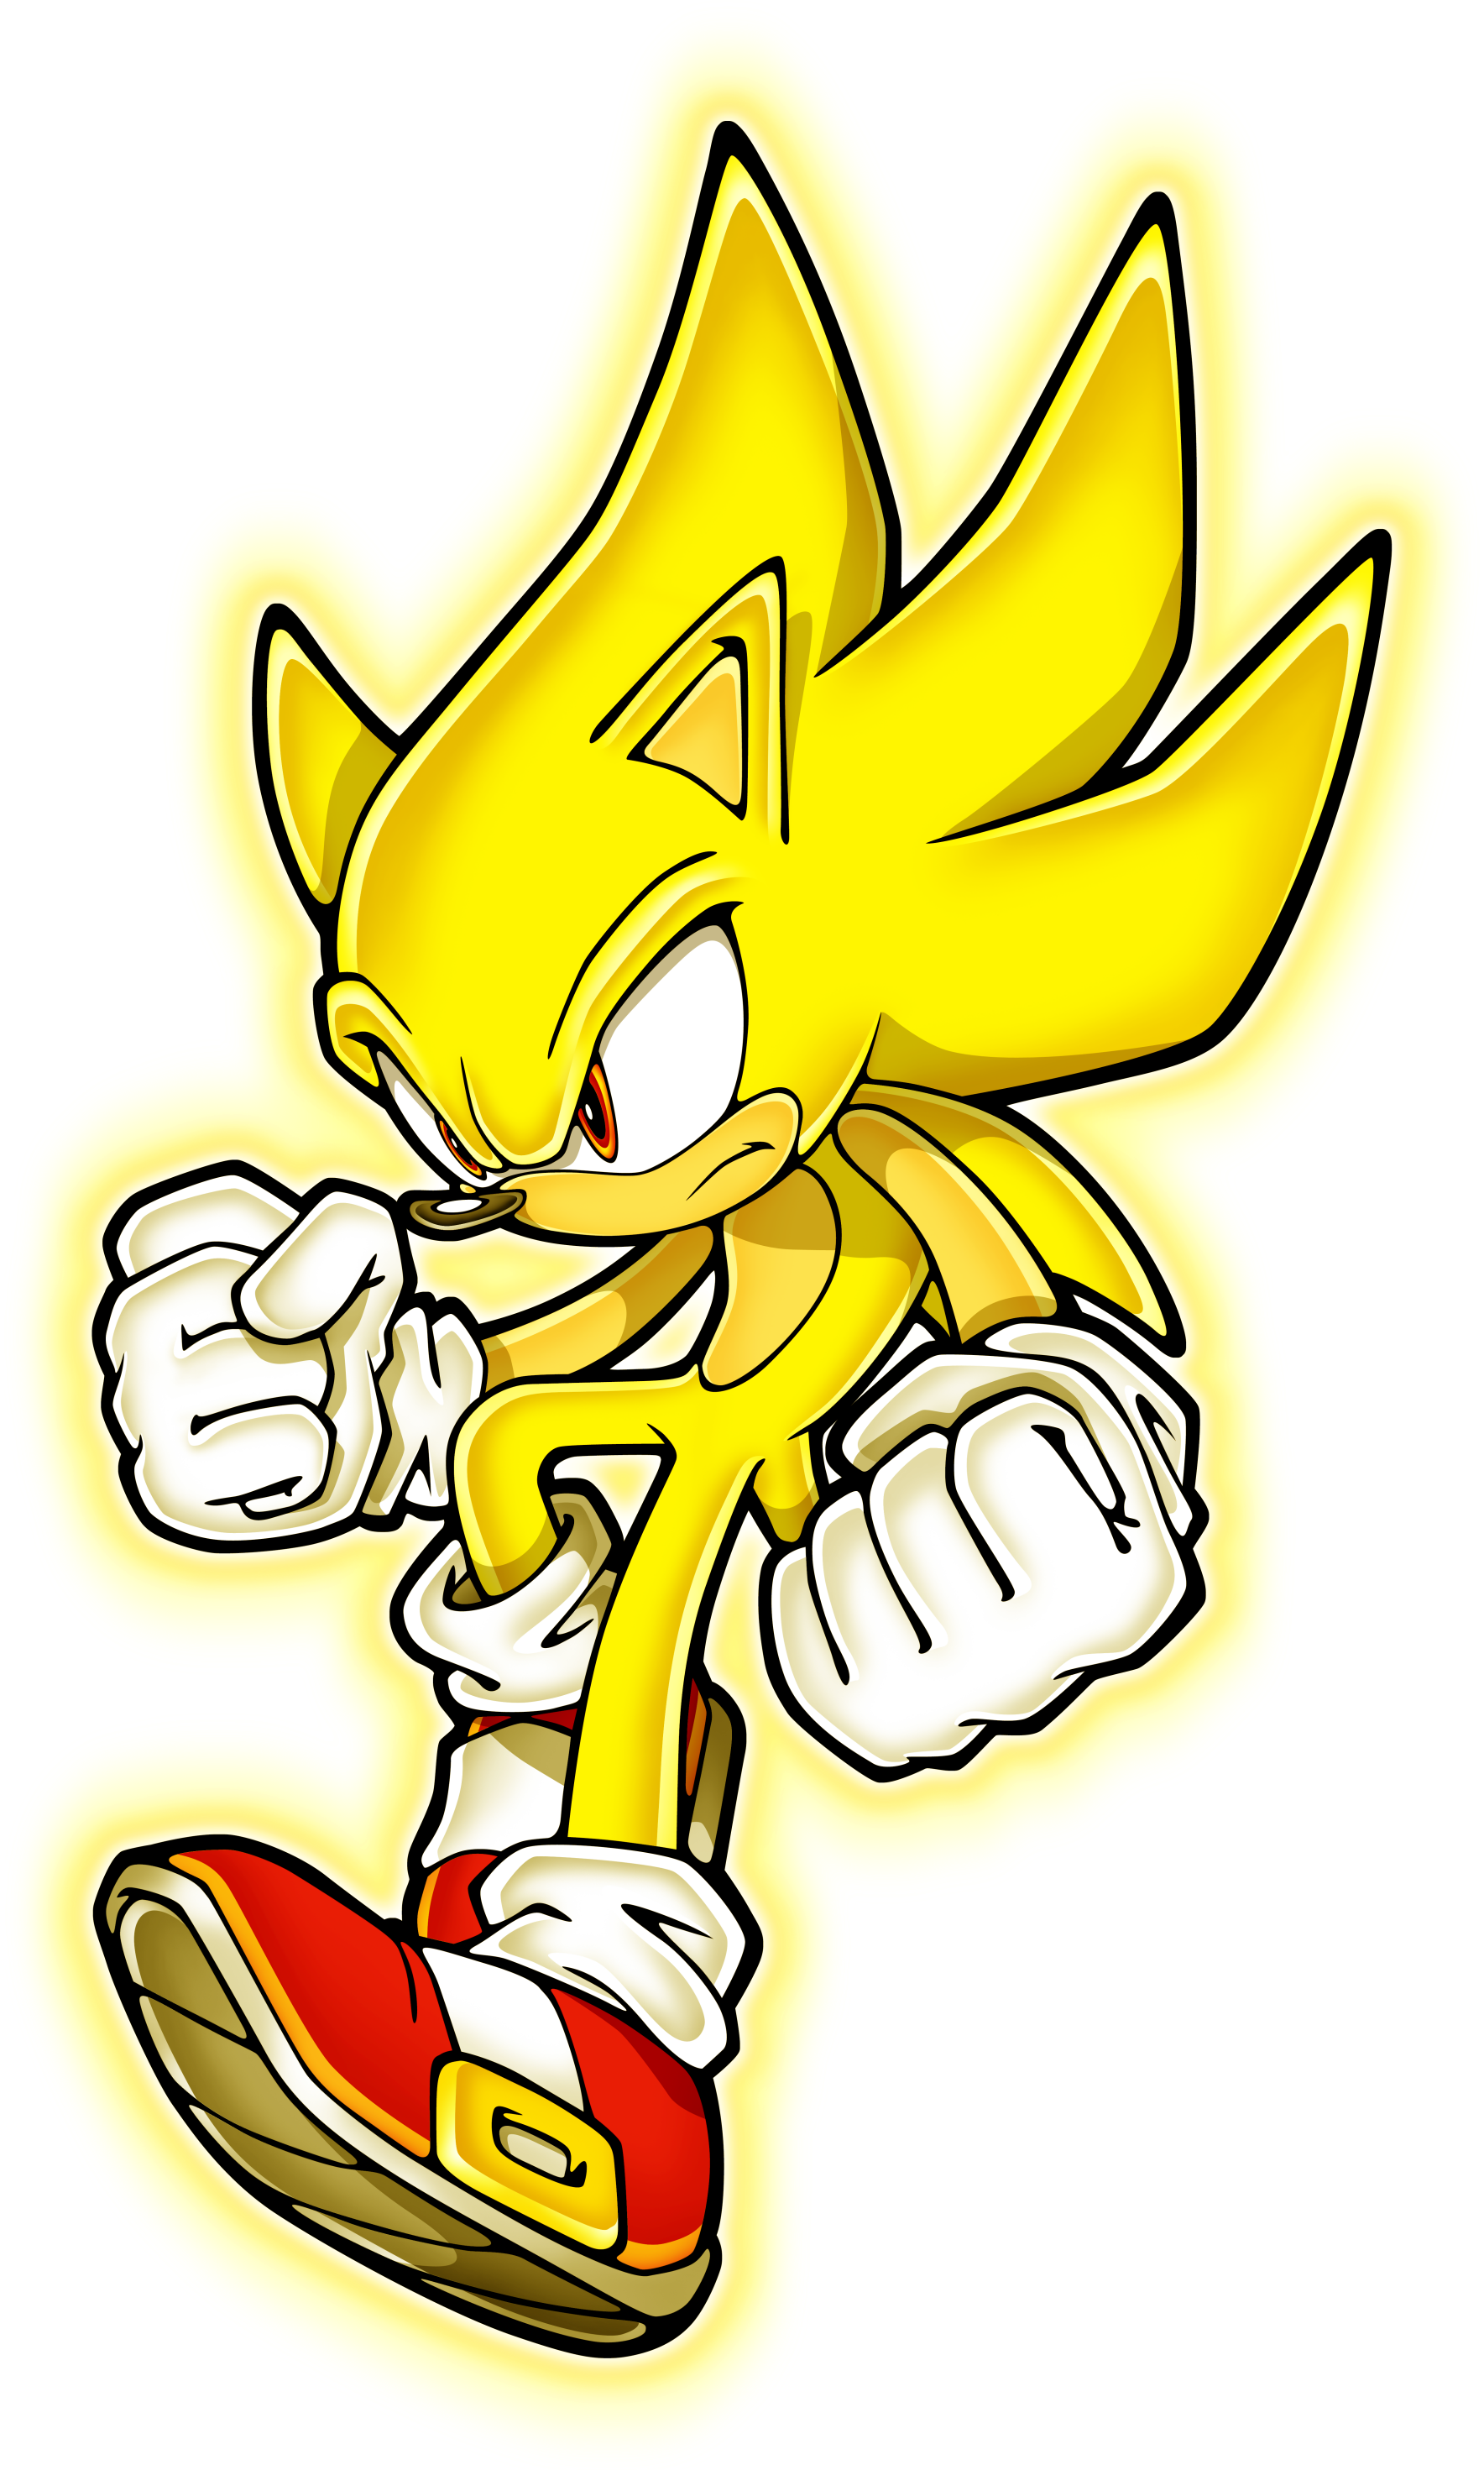 sonic the hedgehog wiki super sonic x universe fandom powered by wikia. Black Bedroom Furniture Sets. Home Design Ideas